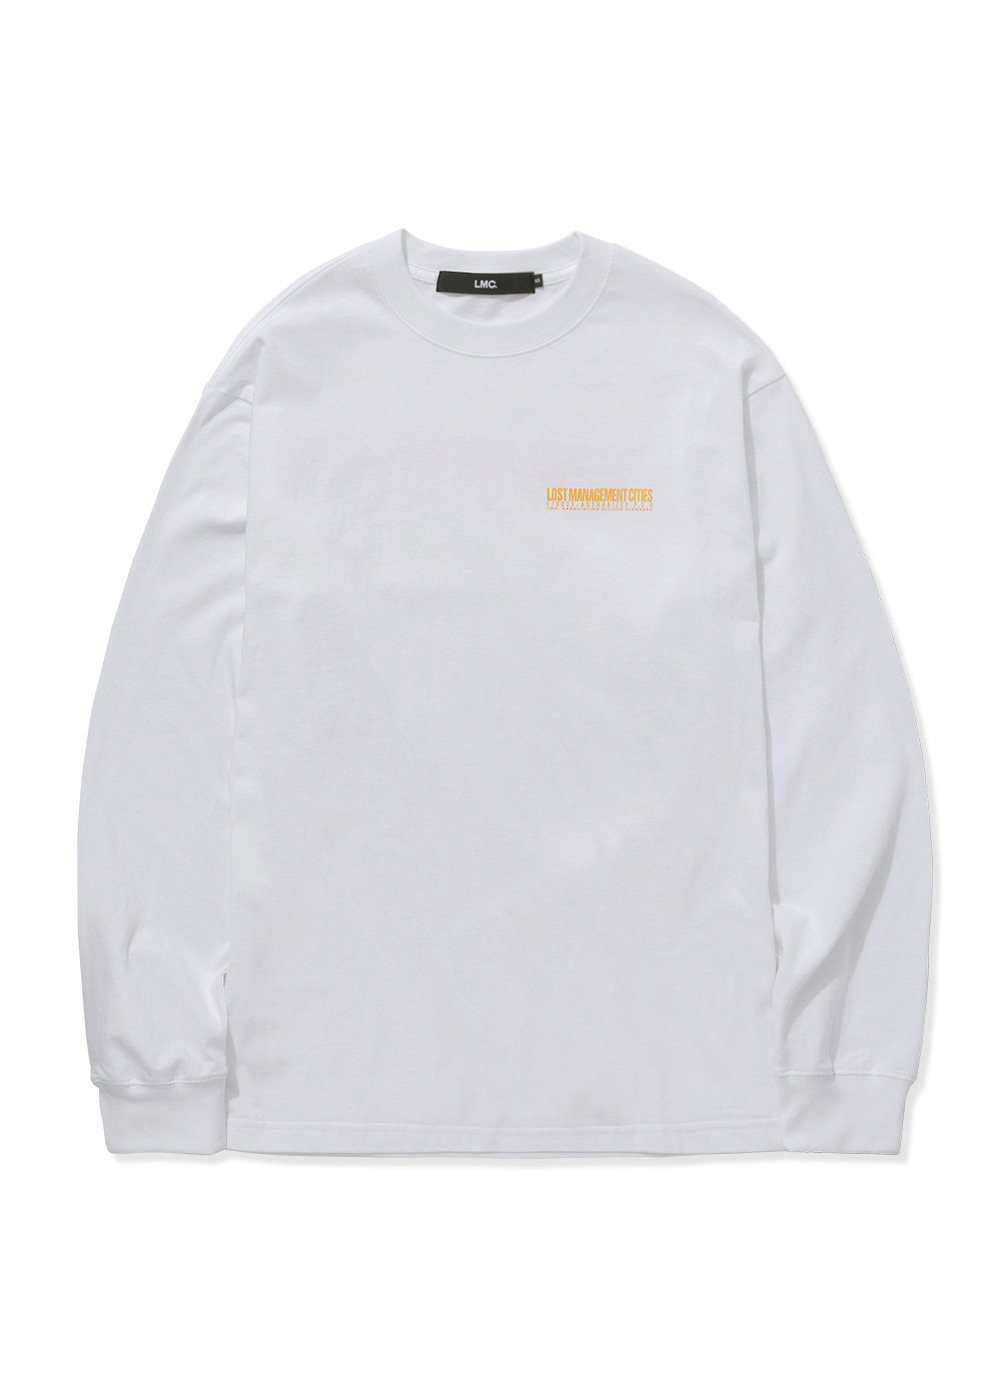 LMC AUTHORIZED LOGO LONG SLV TEE white